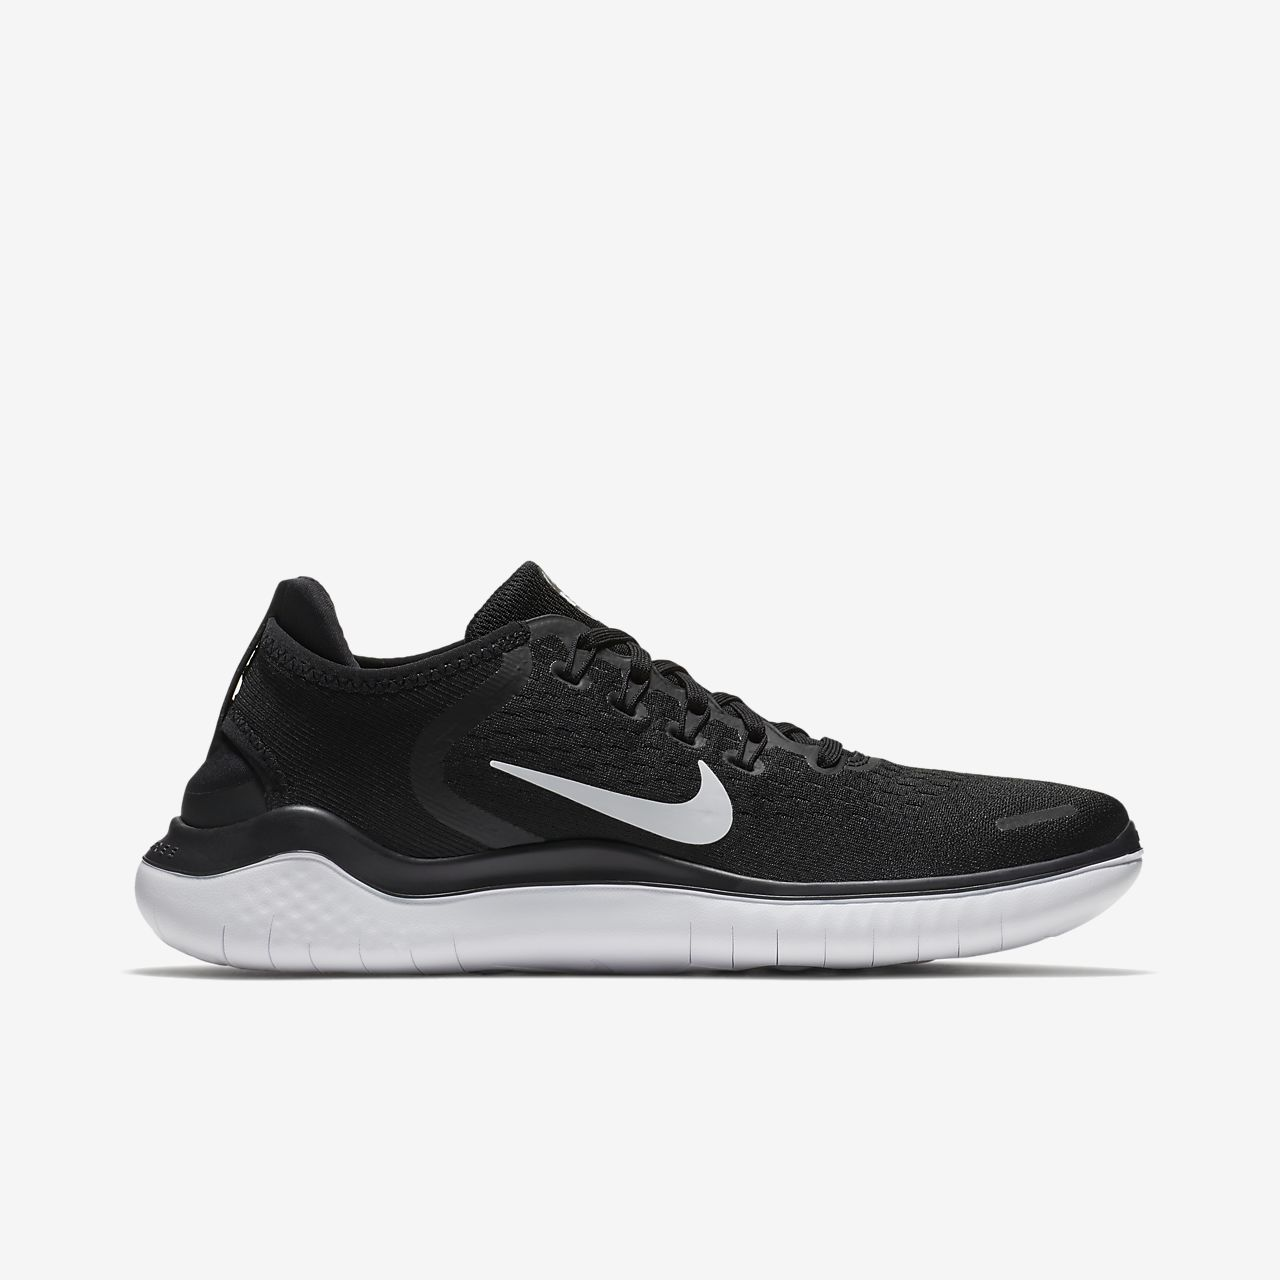 2116628800b3 Nike Free RN 2018 Men s Running Shoe. Nike.com MY